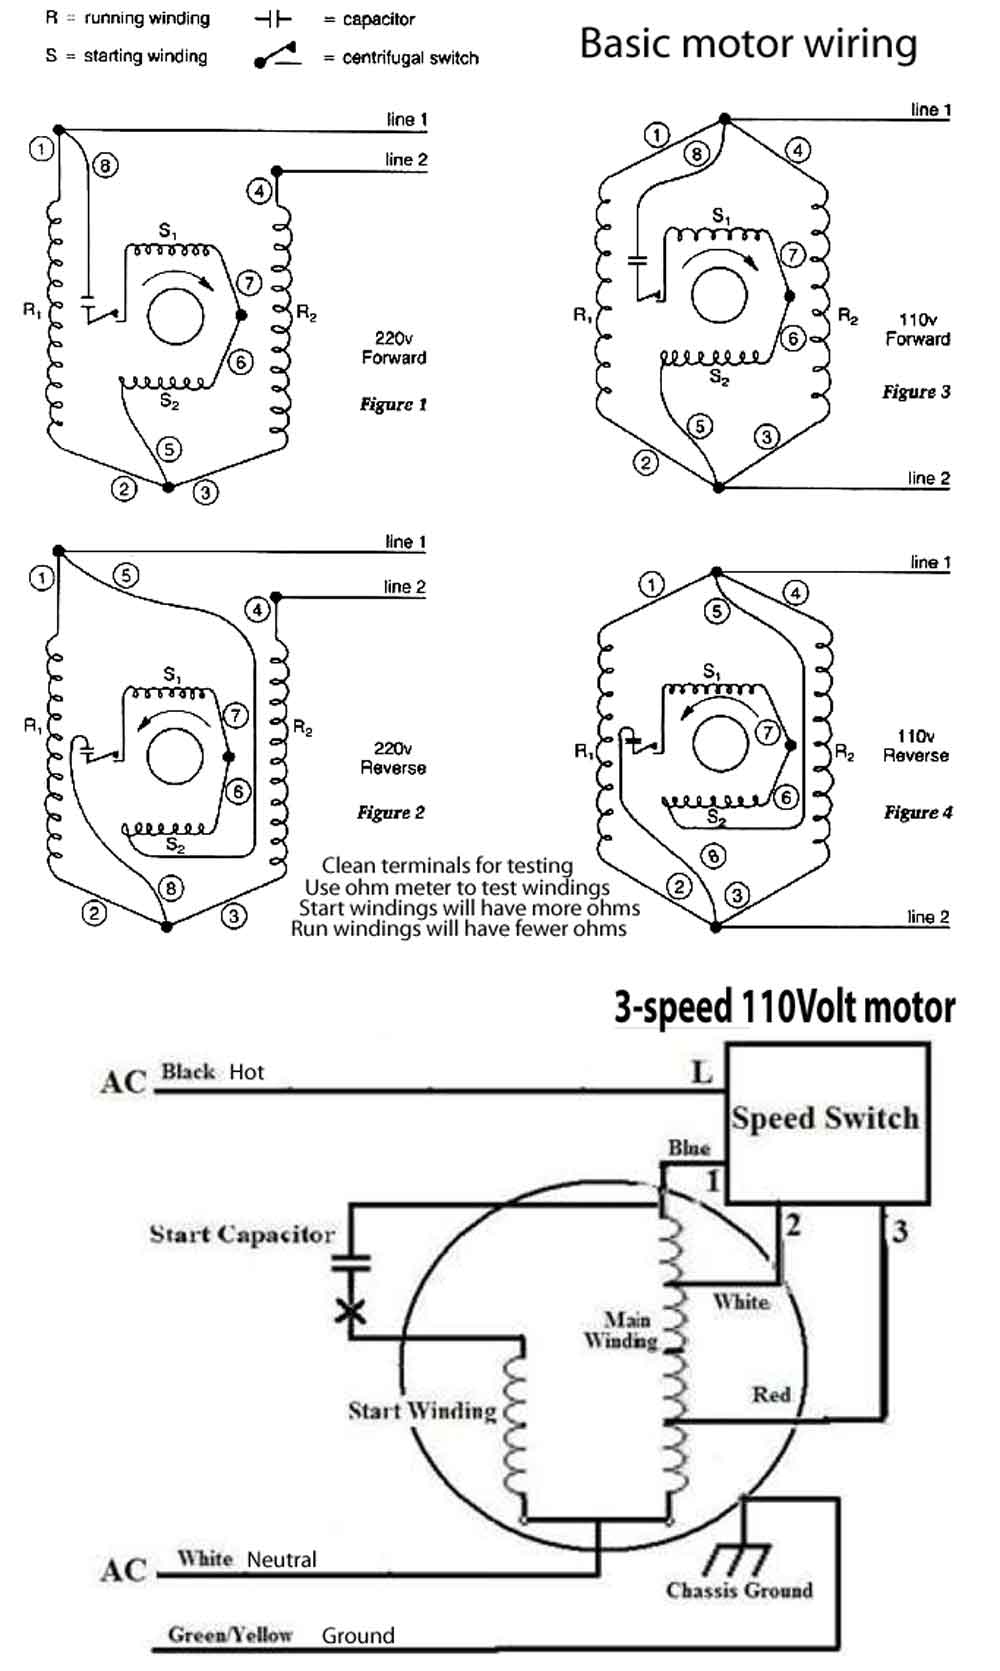 Motor wiring 500 how to wire 3 speed fan switch Grainger Motor Wiring Diagrams at pacquiaovsvargaslive.co